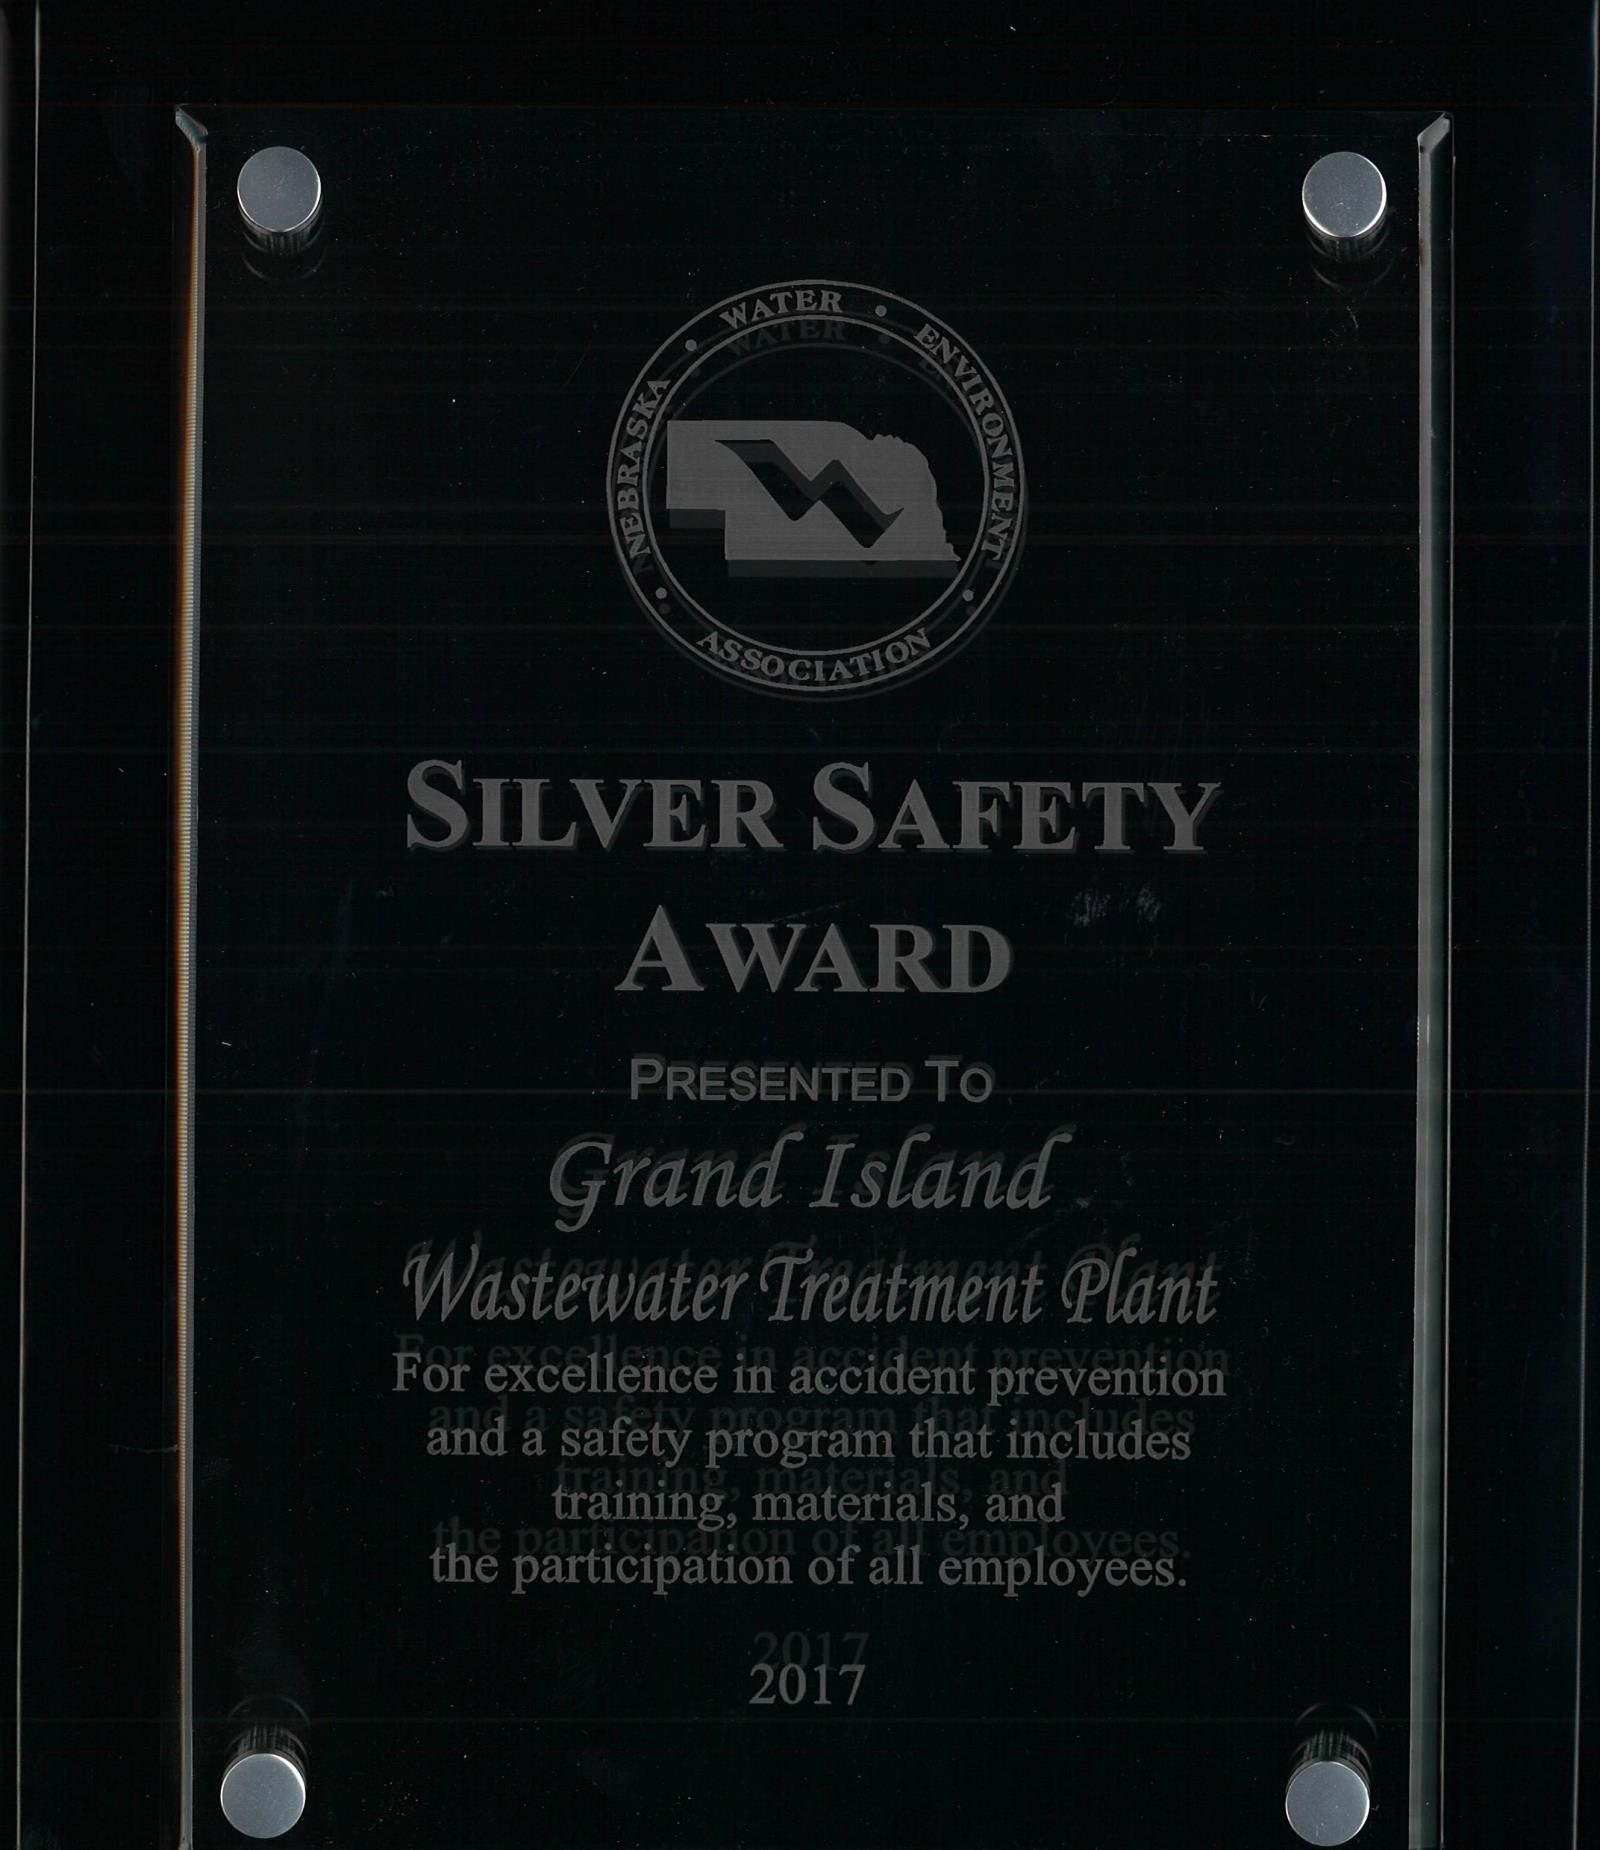 SILVER SAFETY AWARD 2017